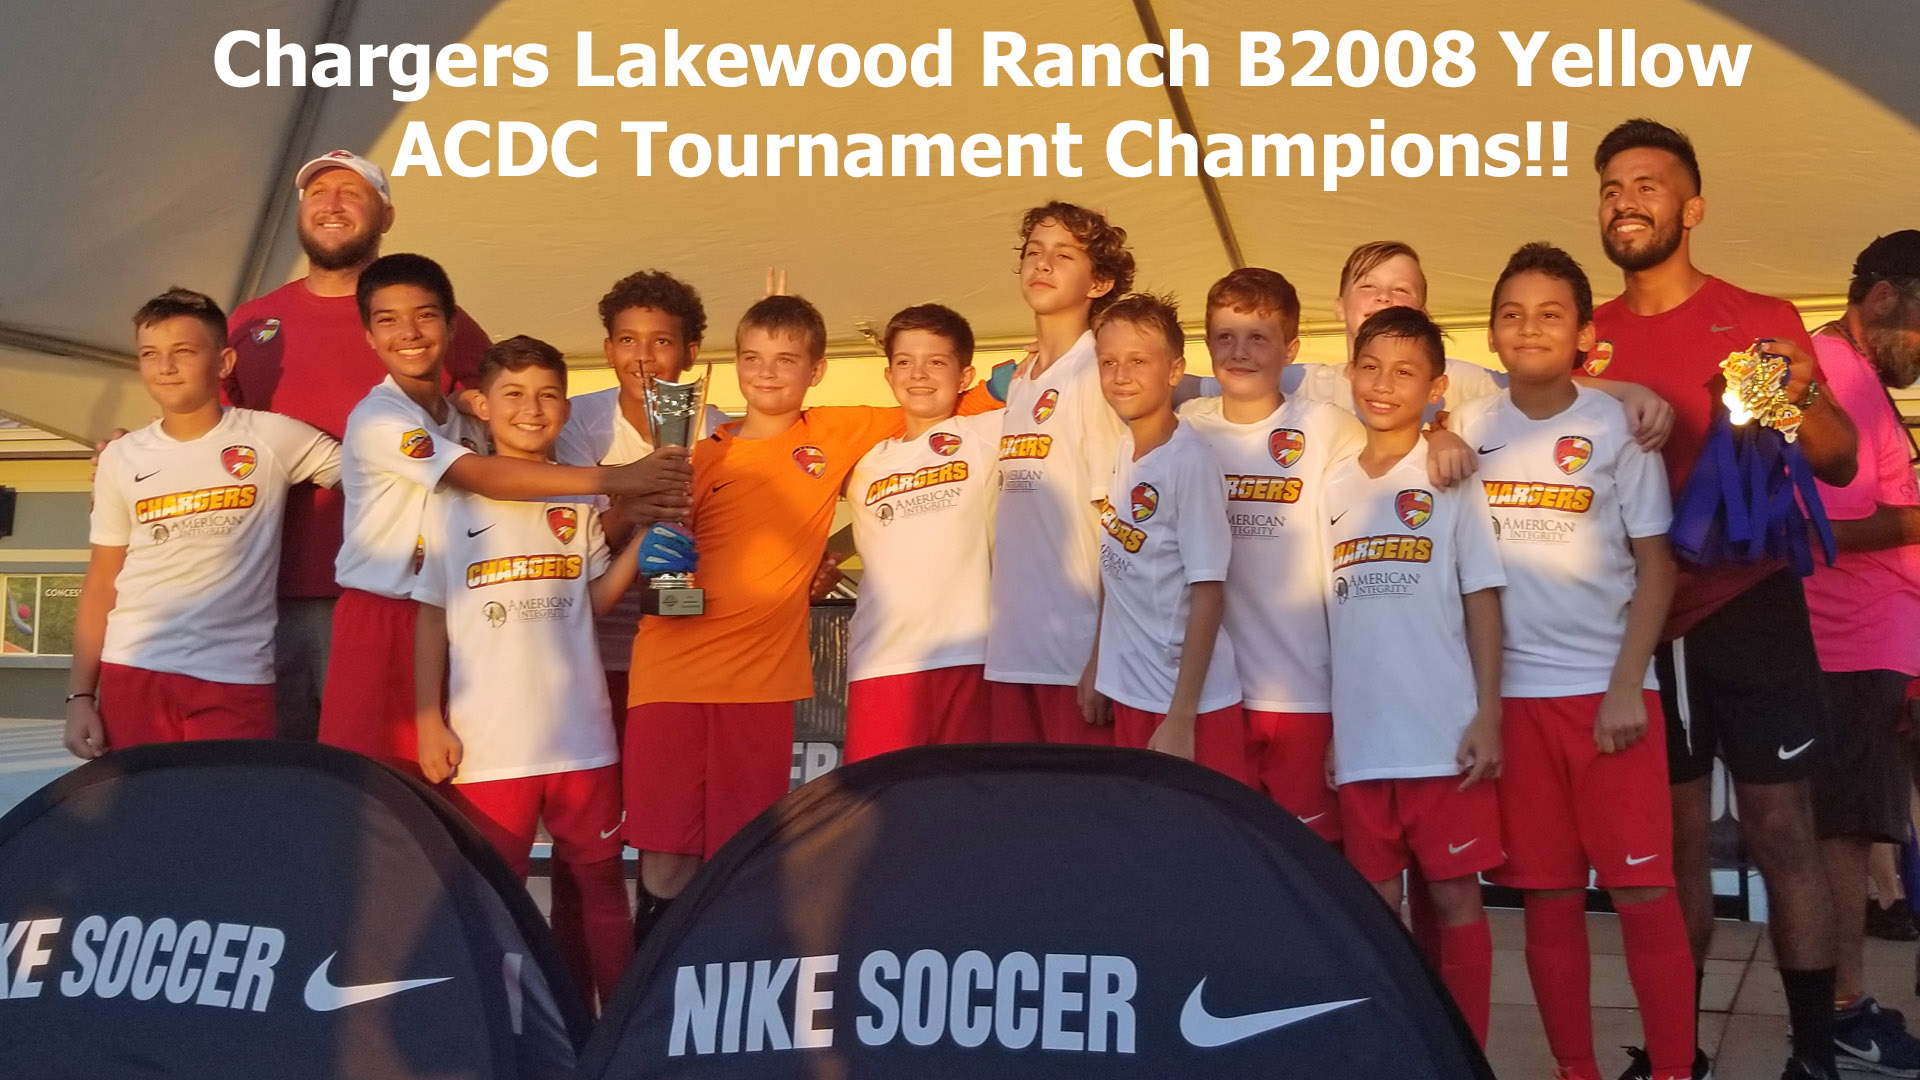 LWR B2008 ACDC Champs!!